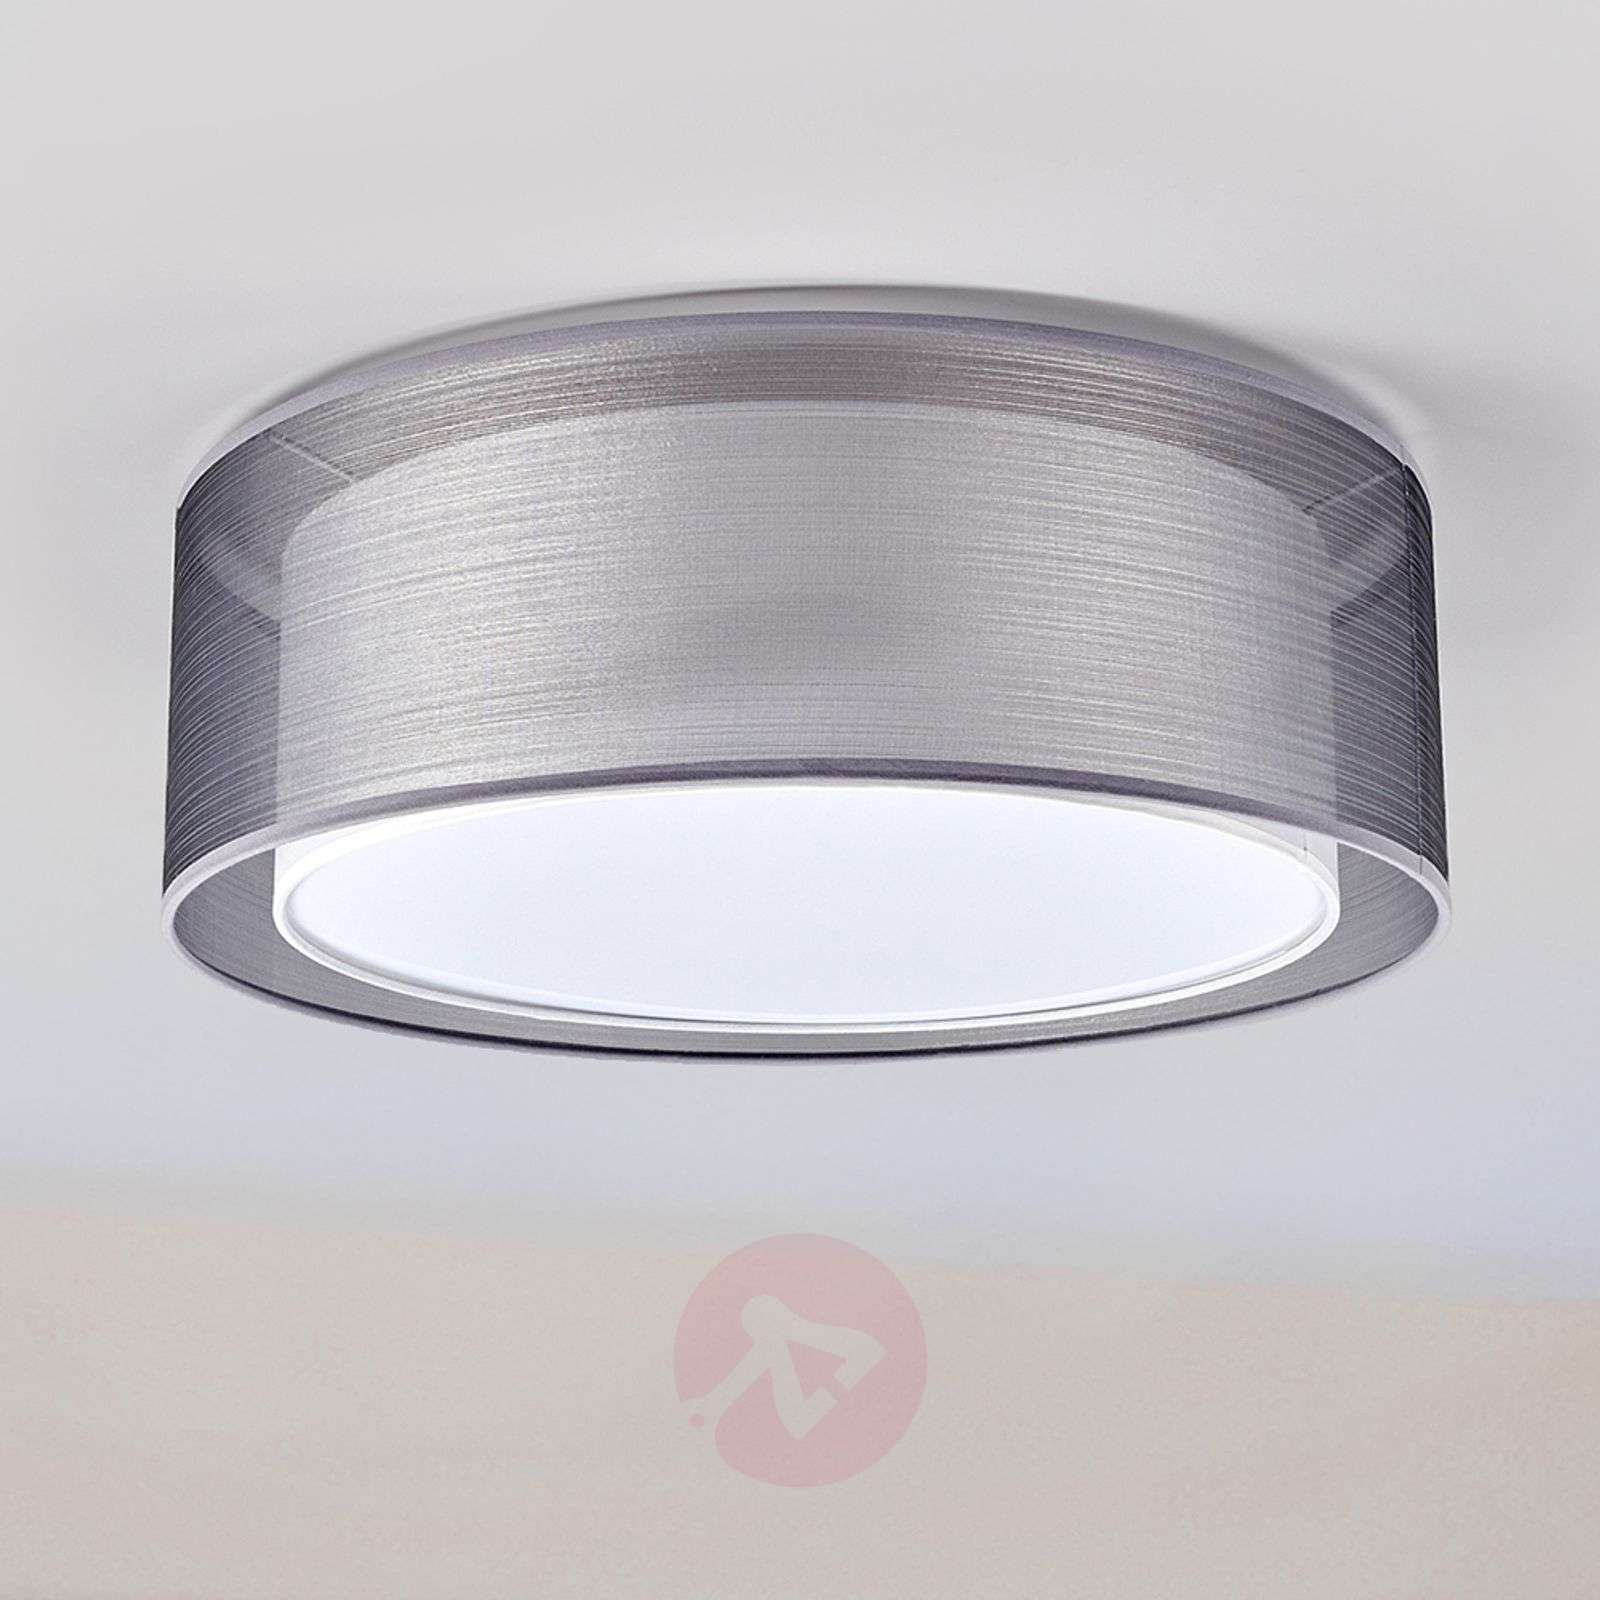 Grey Nica ceiling light with double fabric shade-4018005-03